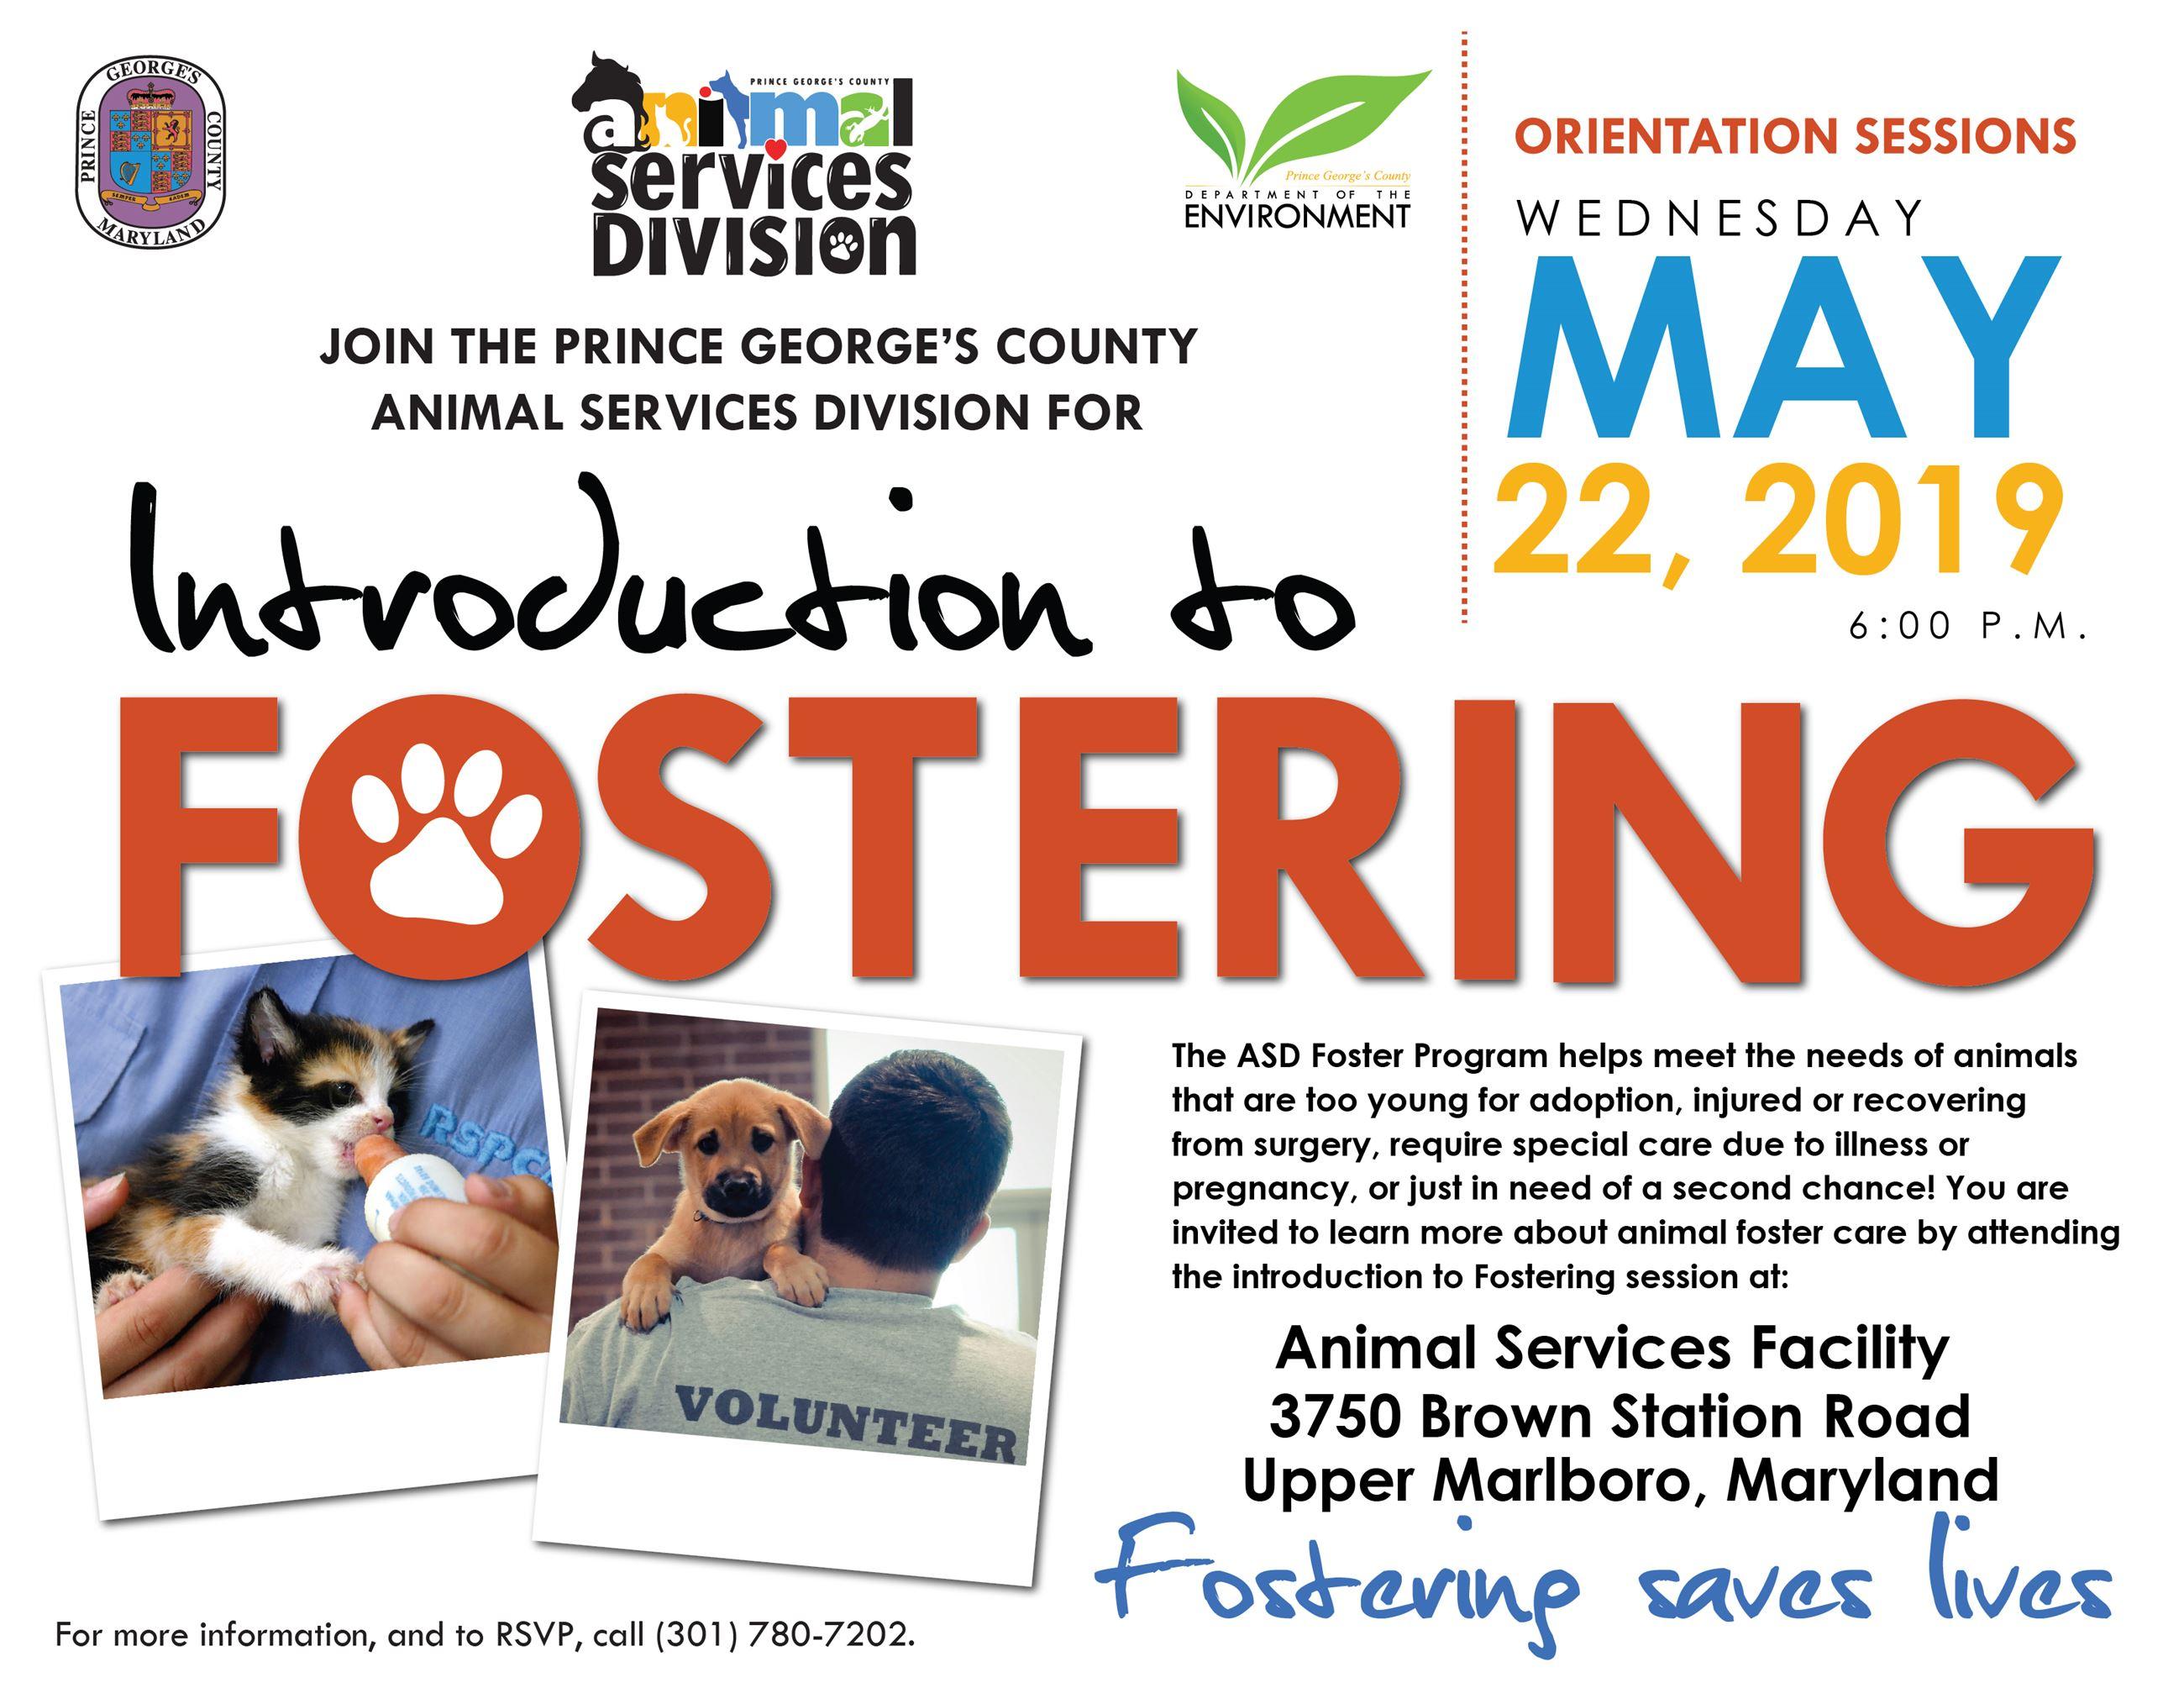 foster orientation UPDATED 5 22 19